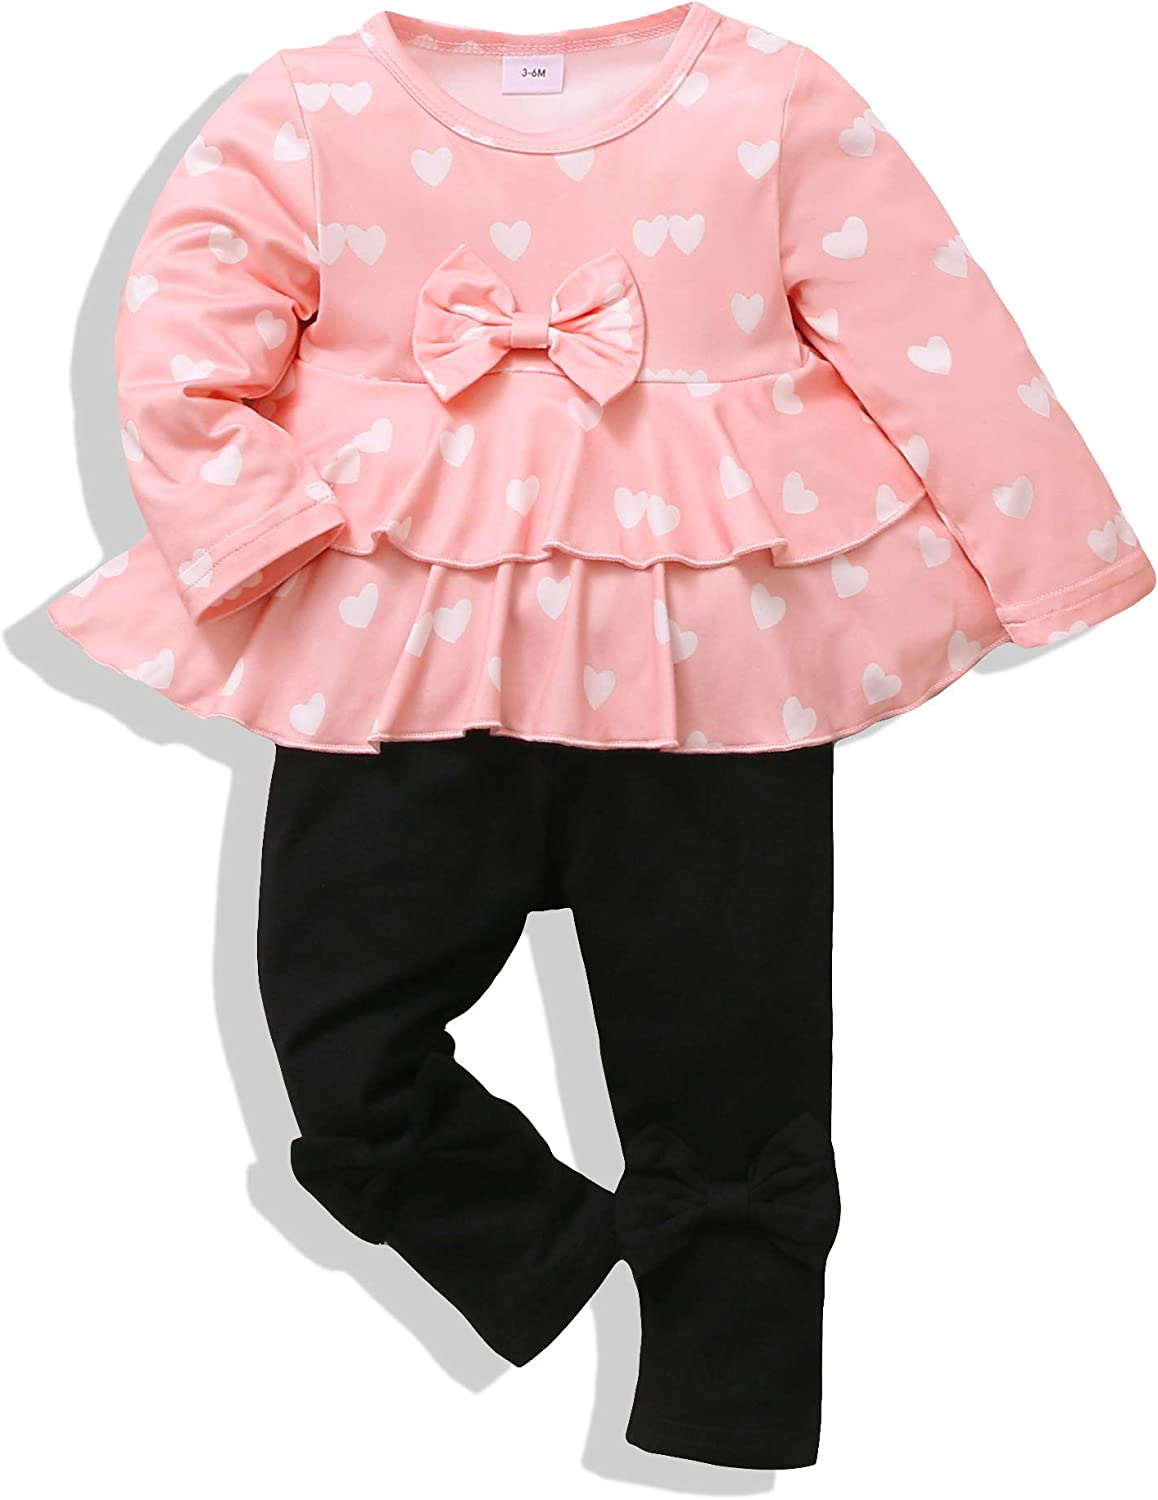 Toddler Infant Baby Girl Clothes Long Ruffle + Brand Cheap Sale Venue Indianapolis Mall Sleeve Pants Tops